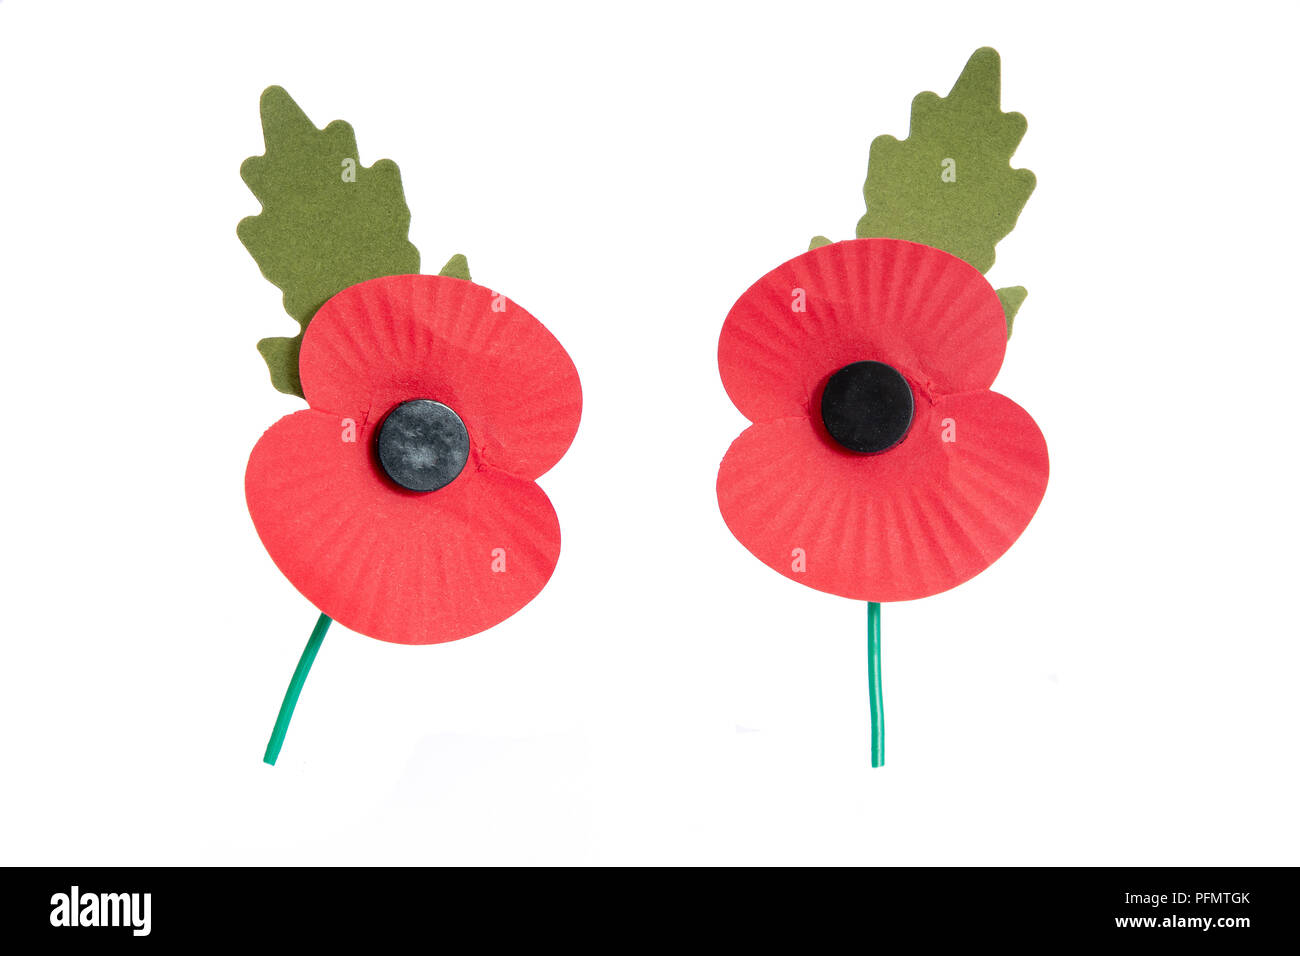 Paper red poppy used to symbolise Remembrance Sunday - Stock Image